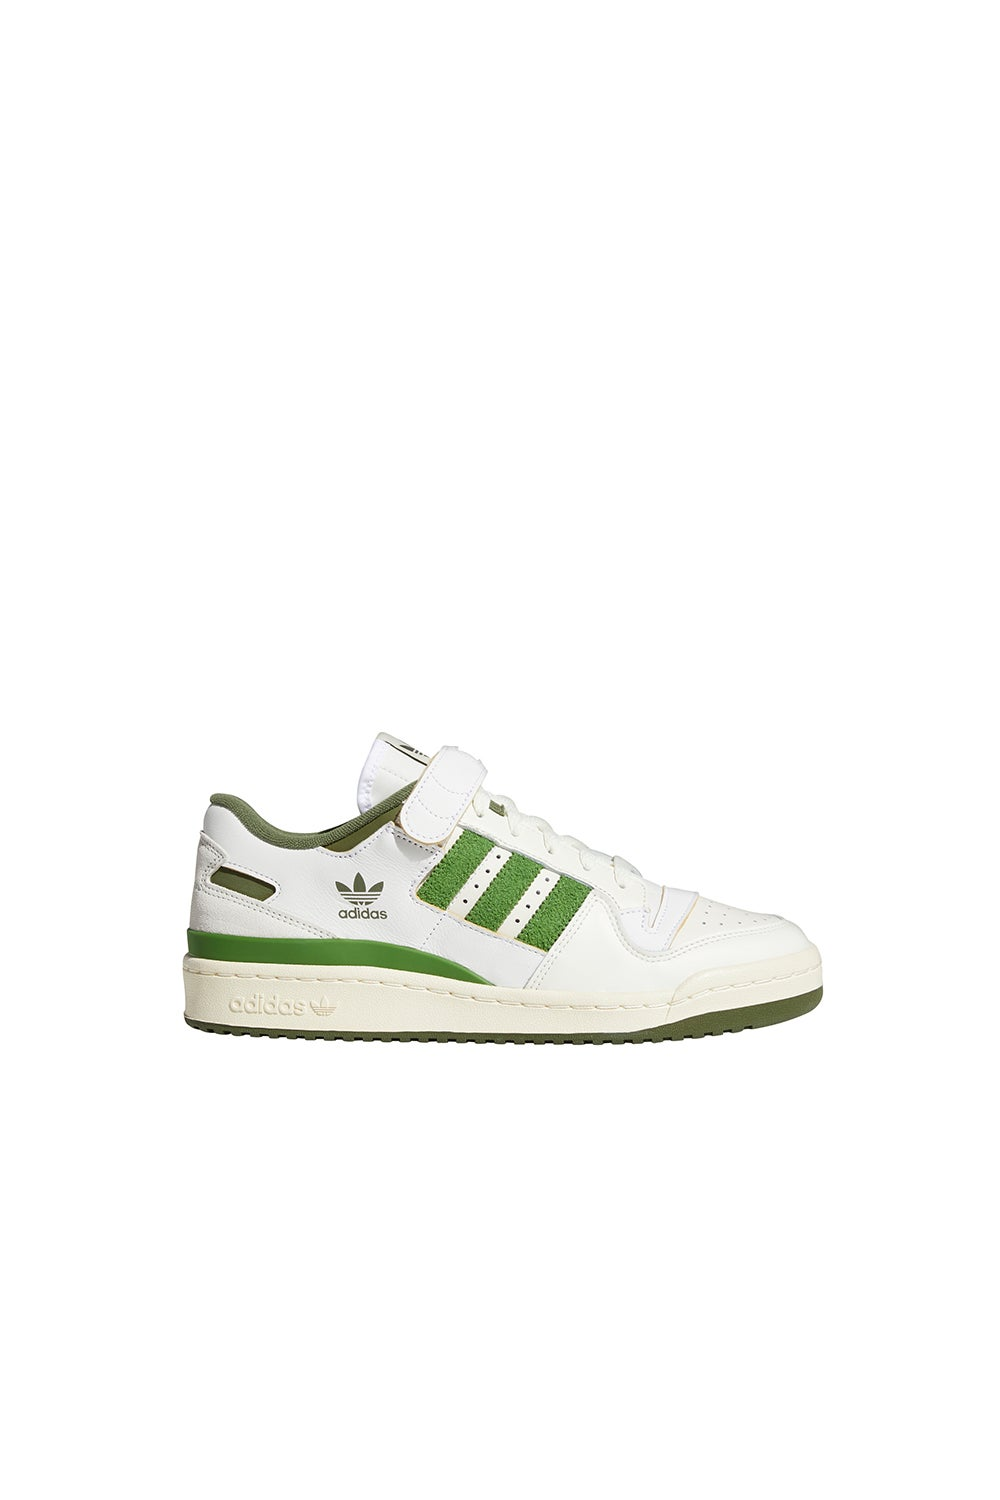 adidas Forum 84 Low Cloud White/Crew Green/Wild Pine